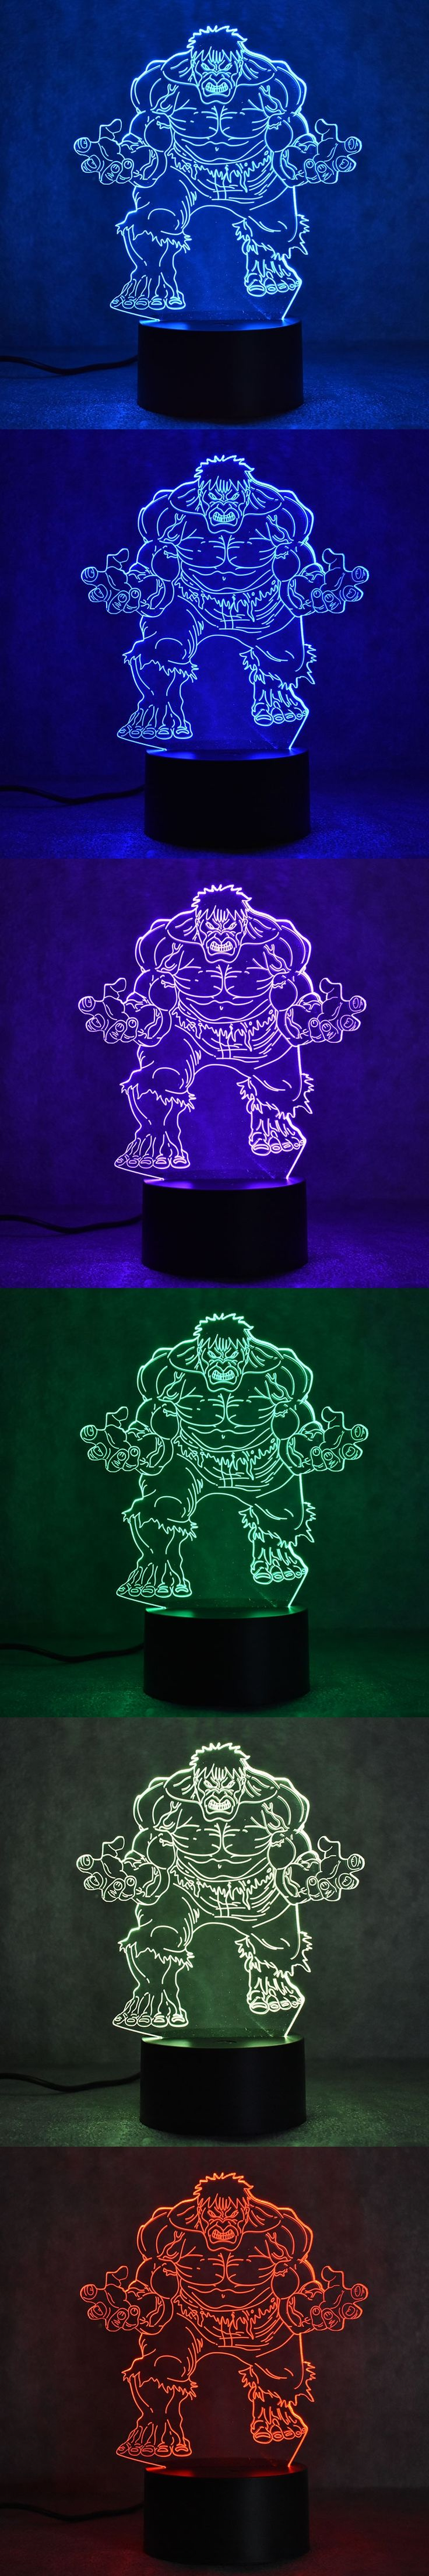 3D Visual LED Hulk Table Lamp USB Bedside Sleeping Night Light Creative Super Hero Figure Shape Lamp Novelty Light Fixture Gifts